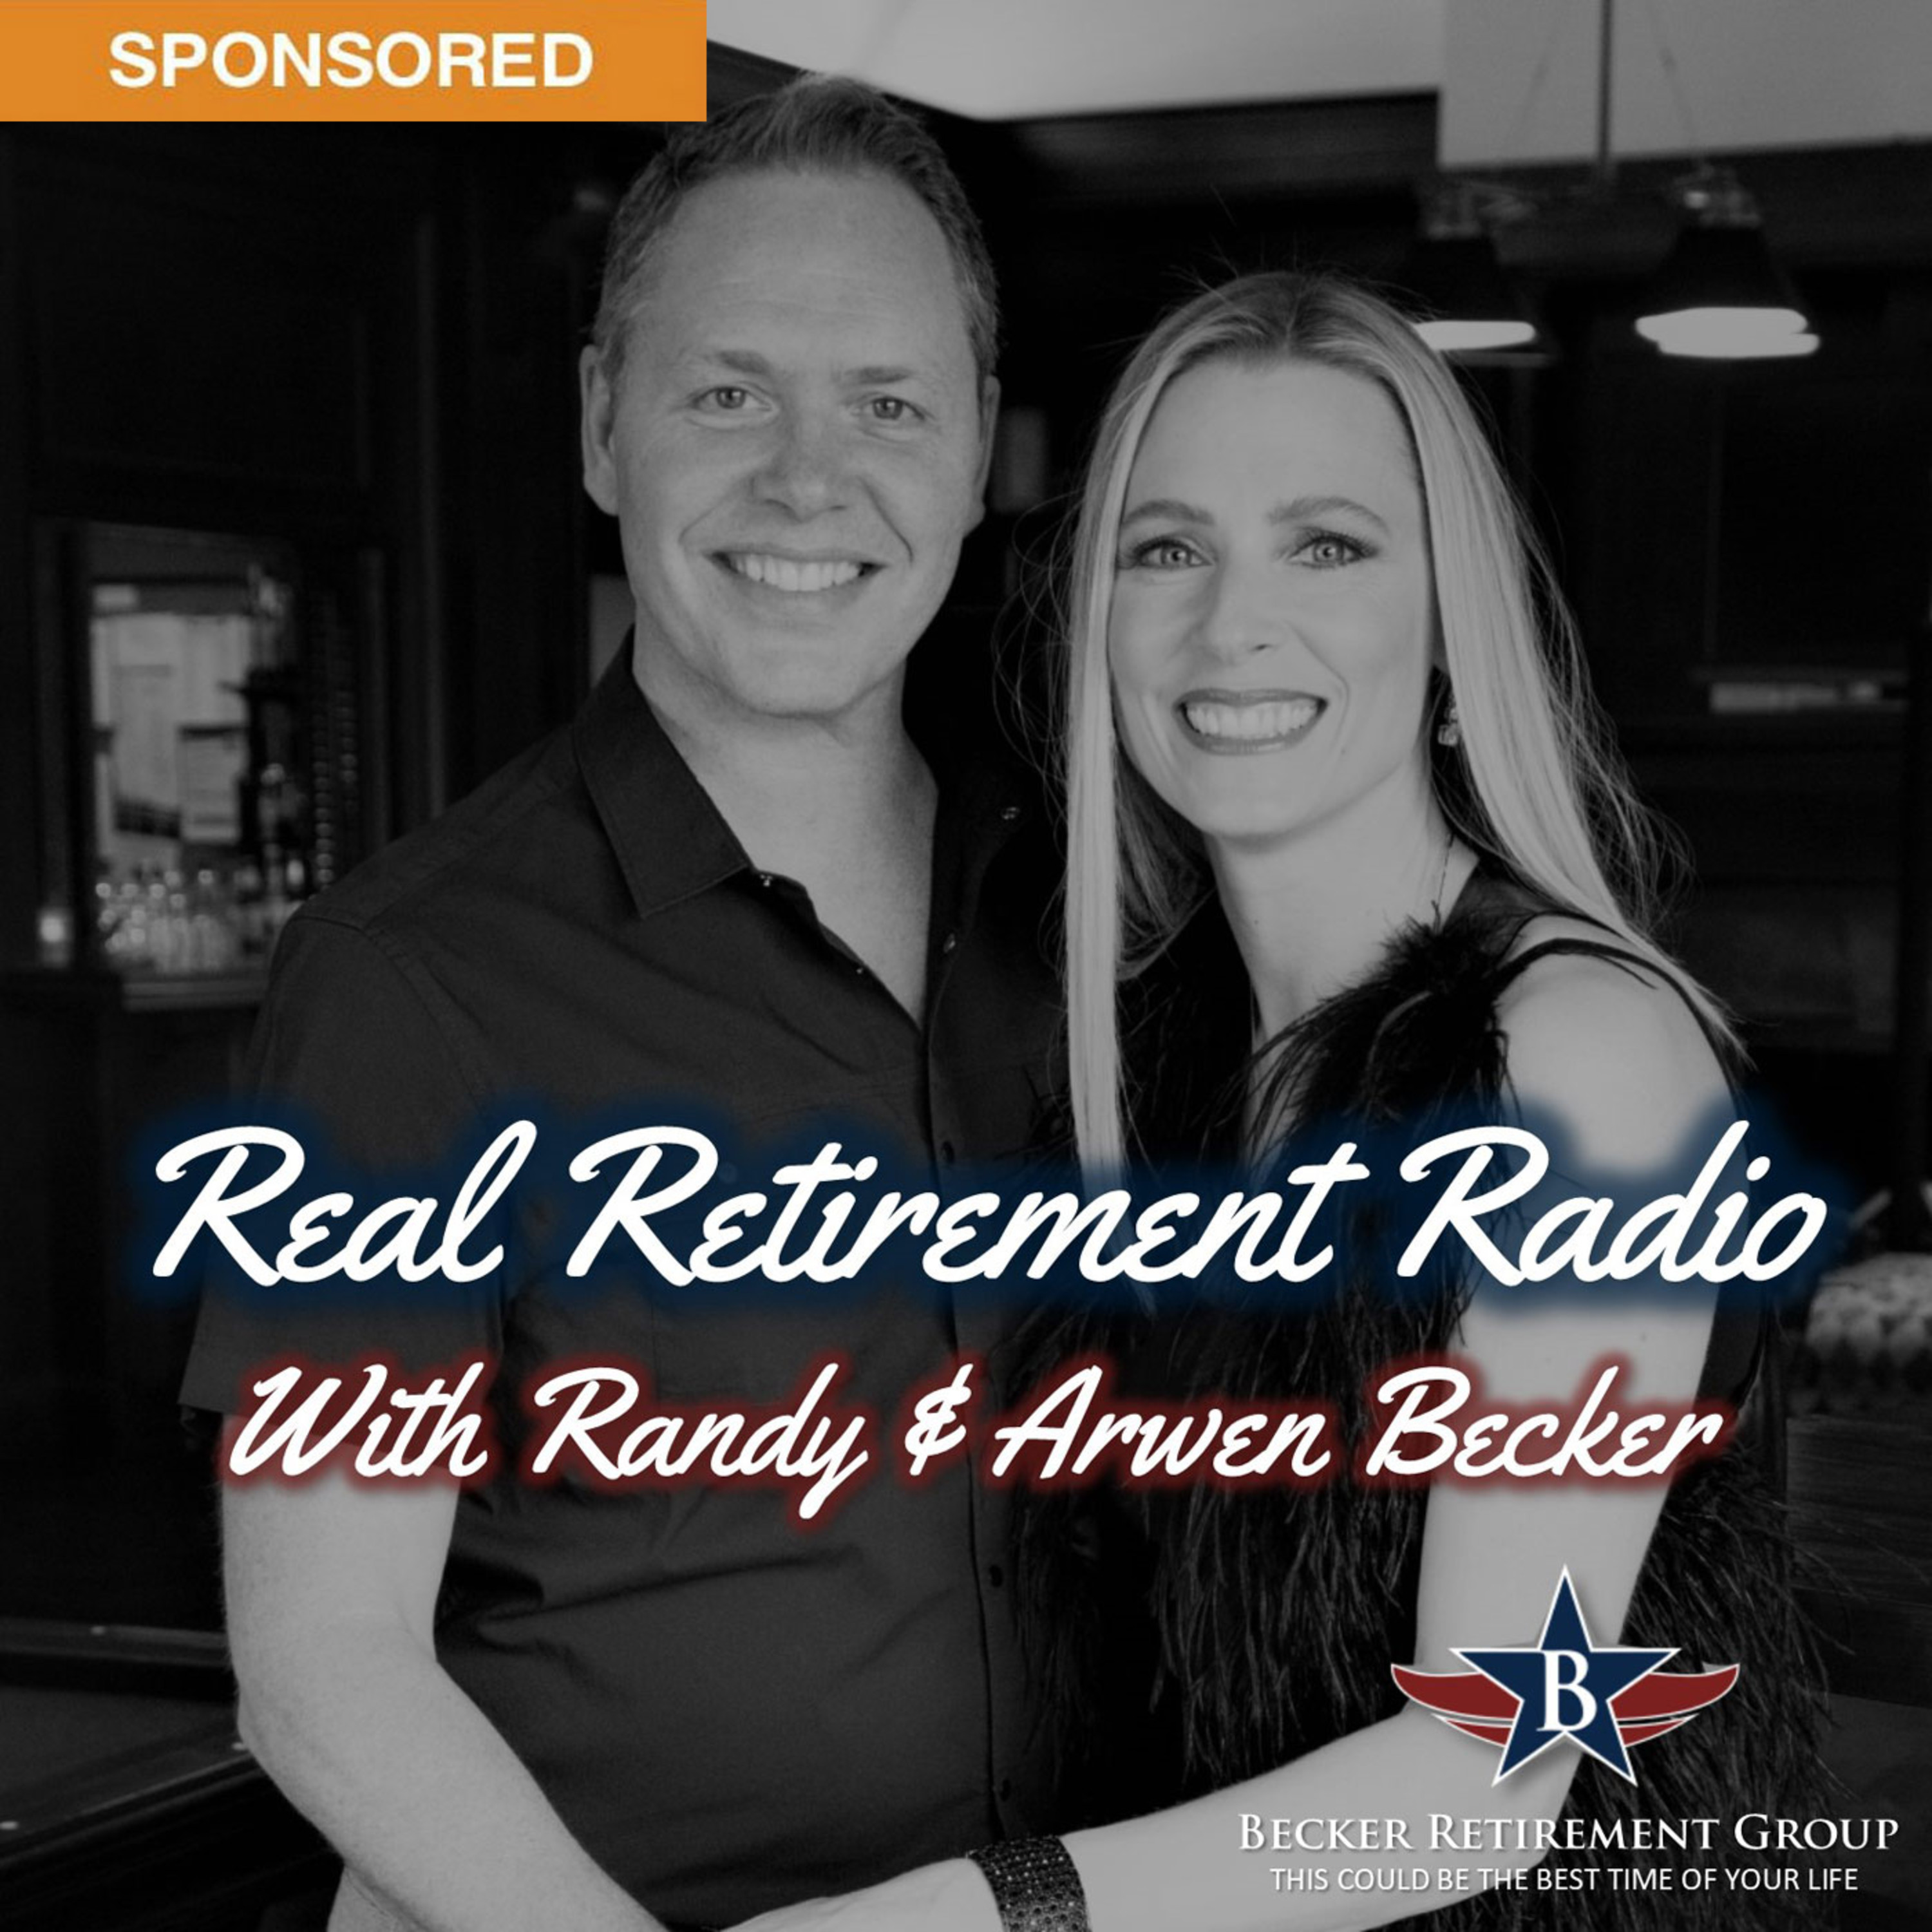 Real Retirement Radio with Randy and Arwen Becker